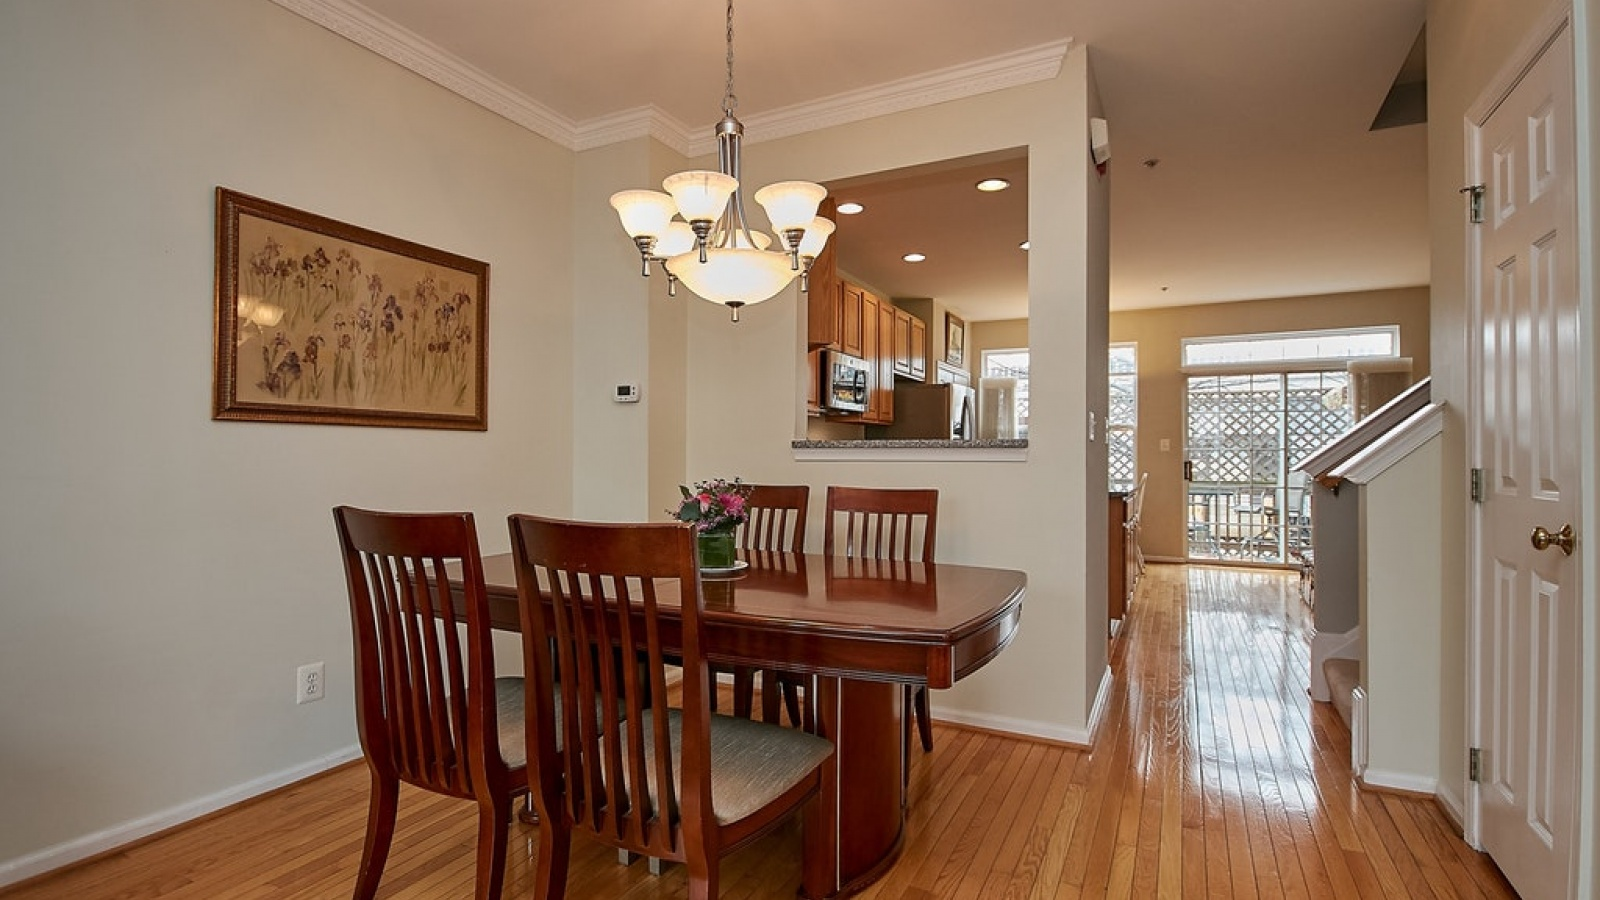 3 Bedrooms, Residential, For sale, Livermore Lane, 2 Bathrooms, Listing ID 1083, Alexandria, United States, 22304,